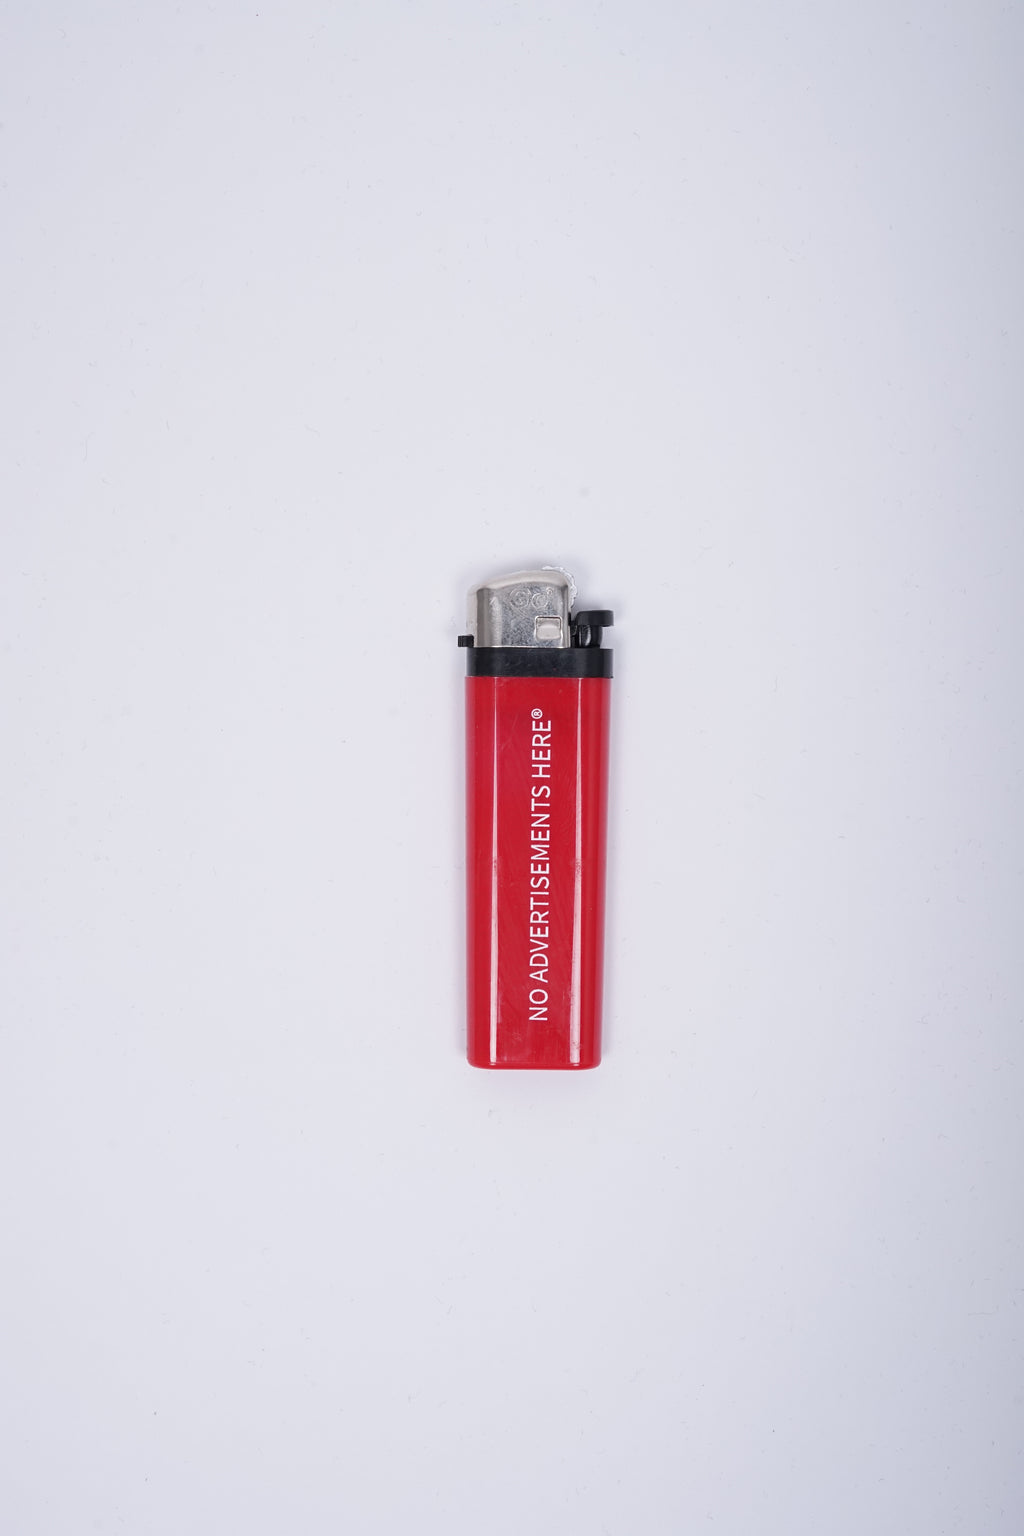 Lighter No Advertisements Here